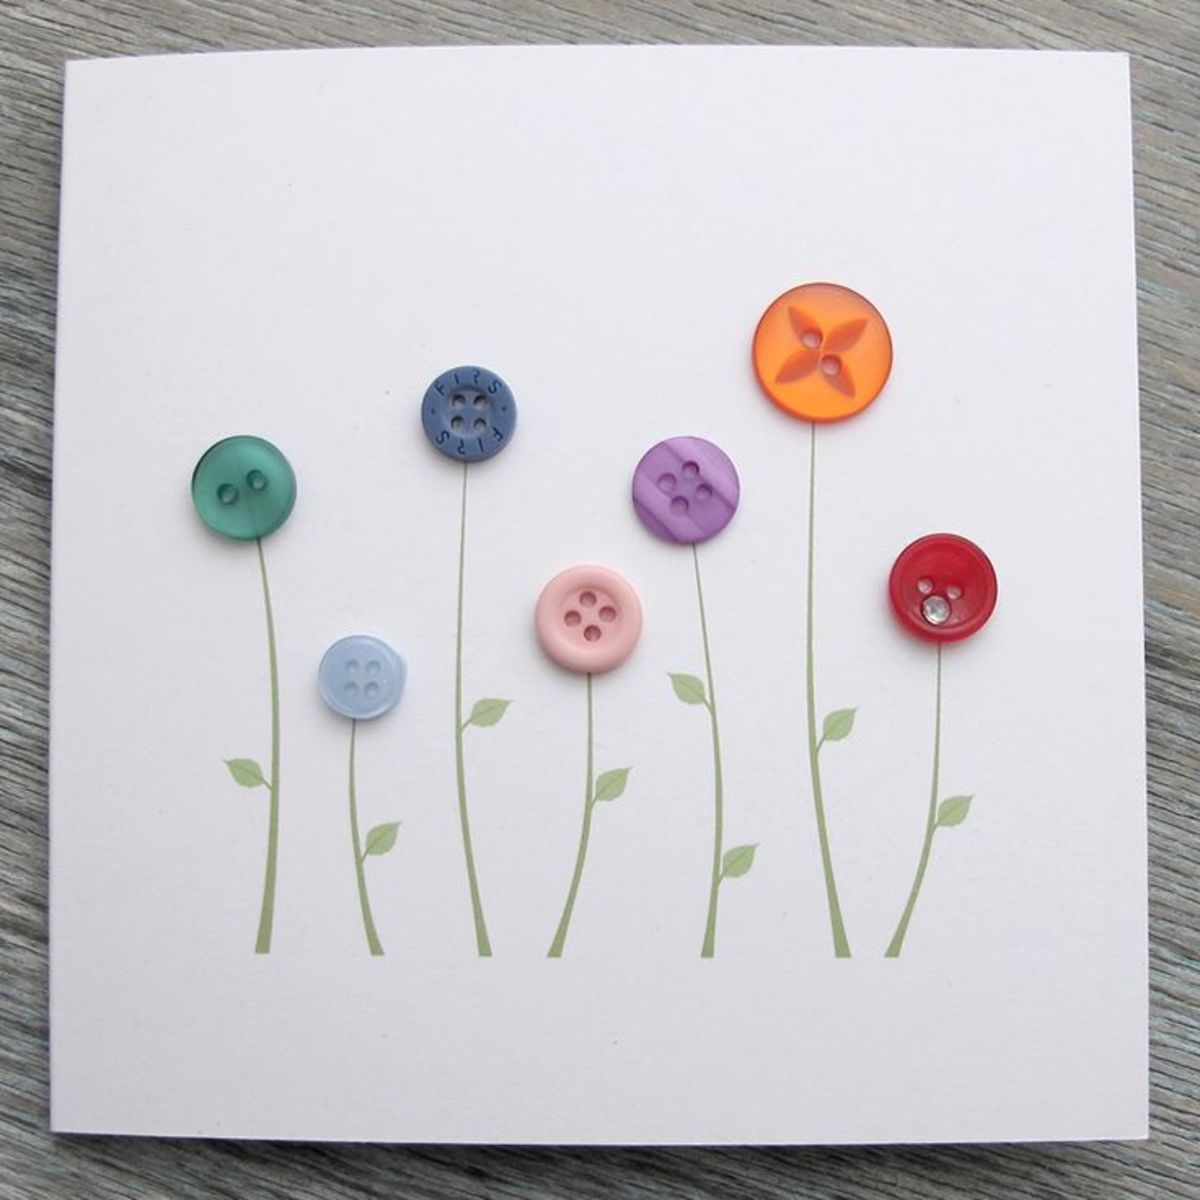 Simple but elegant button flower greeting card. You could add a saying on the card front